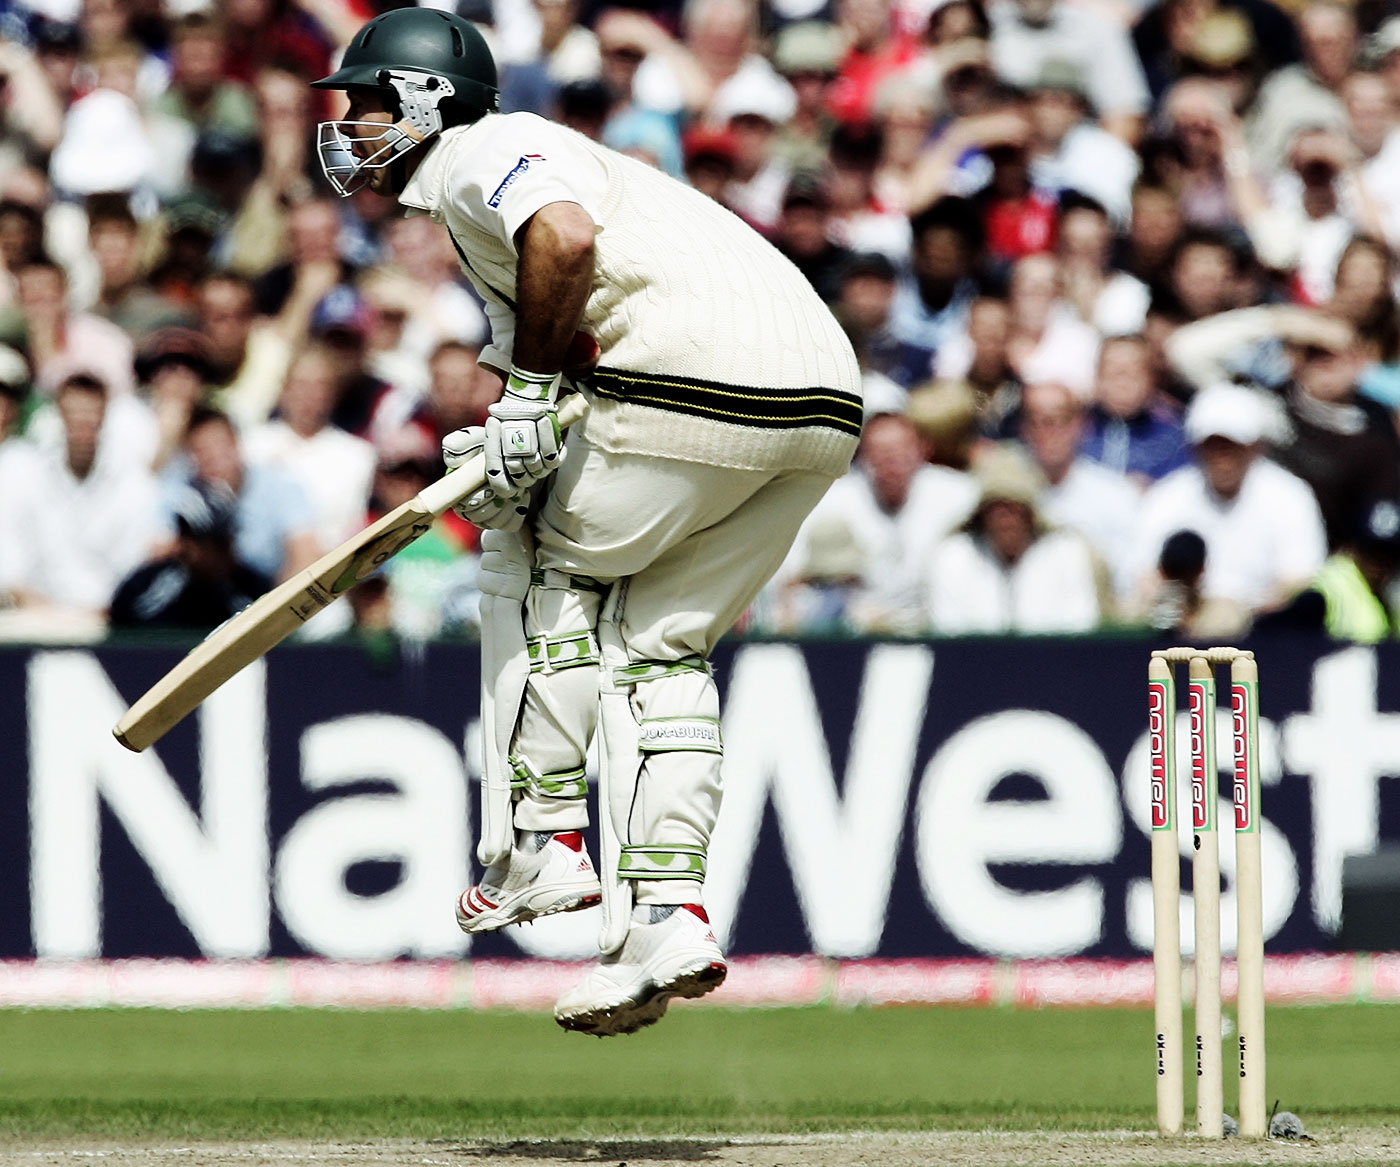 Gut punch: in 2005, Ponting became the first Australian captain to lose an Ashes since 1986-87, but not before he had fought hard to score a century and draw the Old Trafford Test